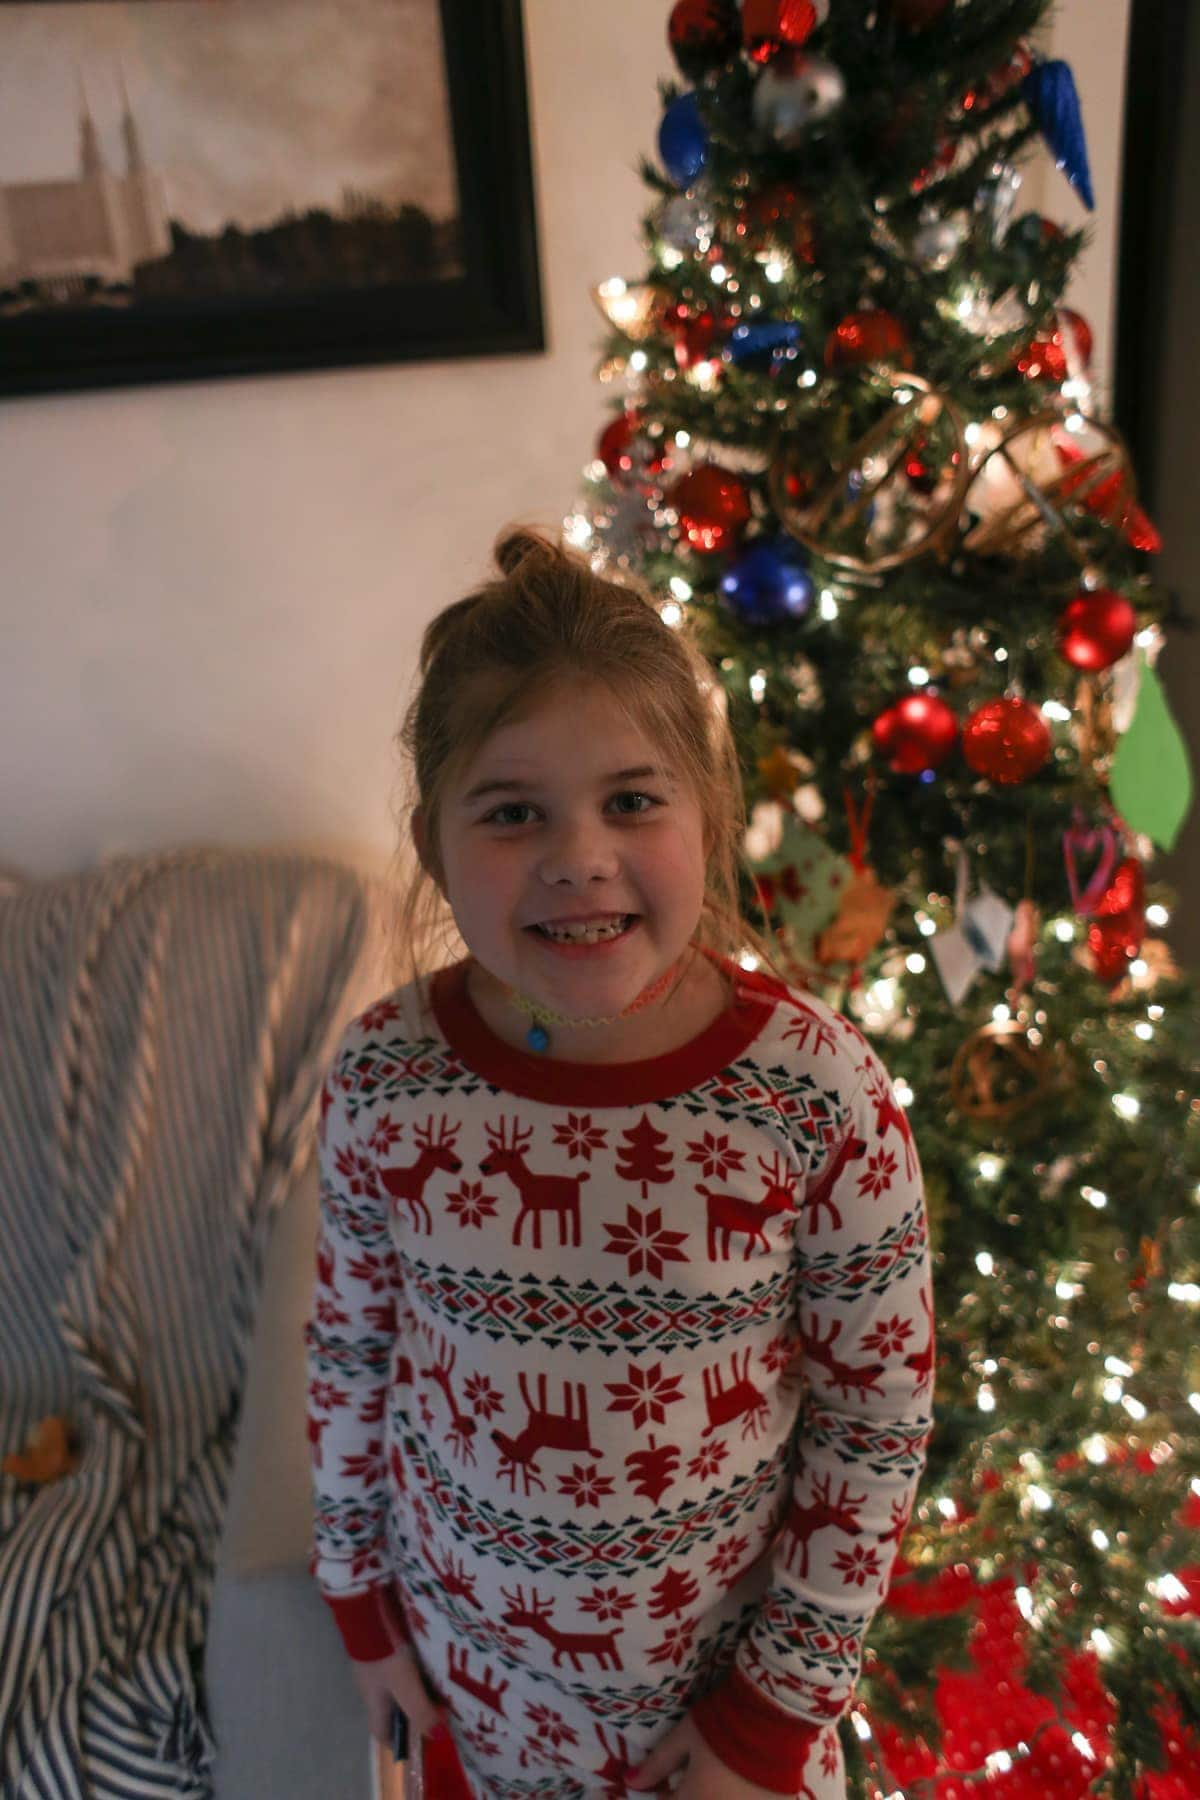 Brooke in front of the Christmas tree